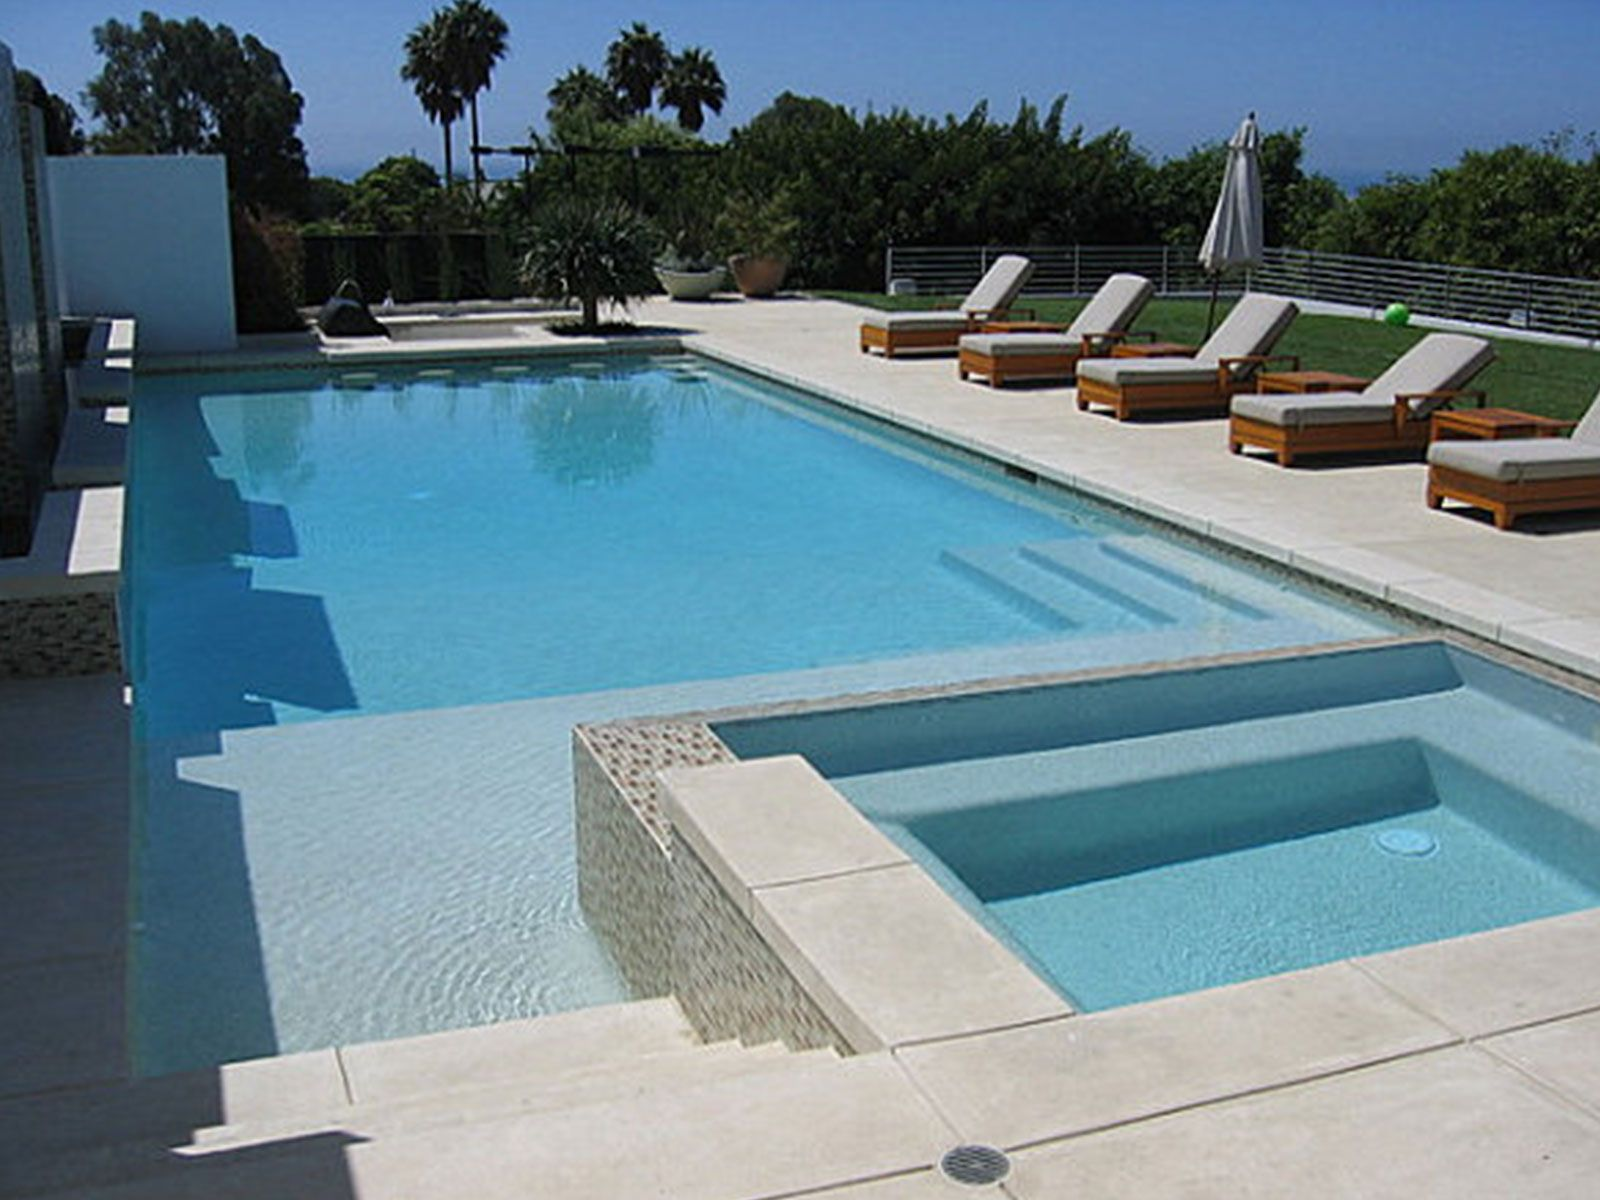 Simple swimming pool design image modern creative swimming for Swimming pool designs and plans